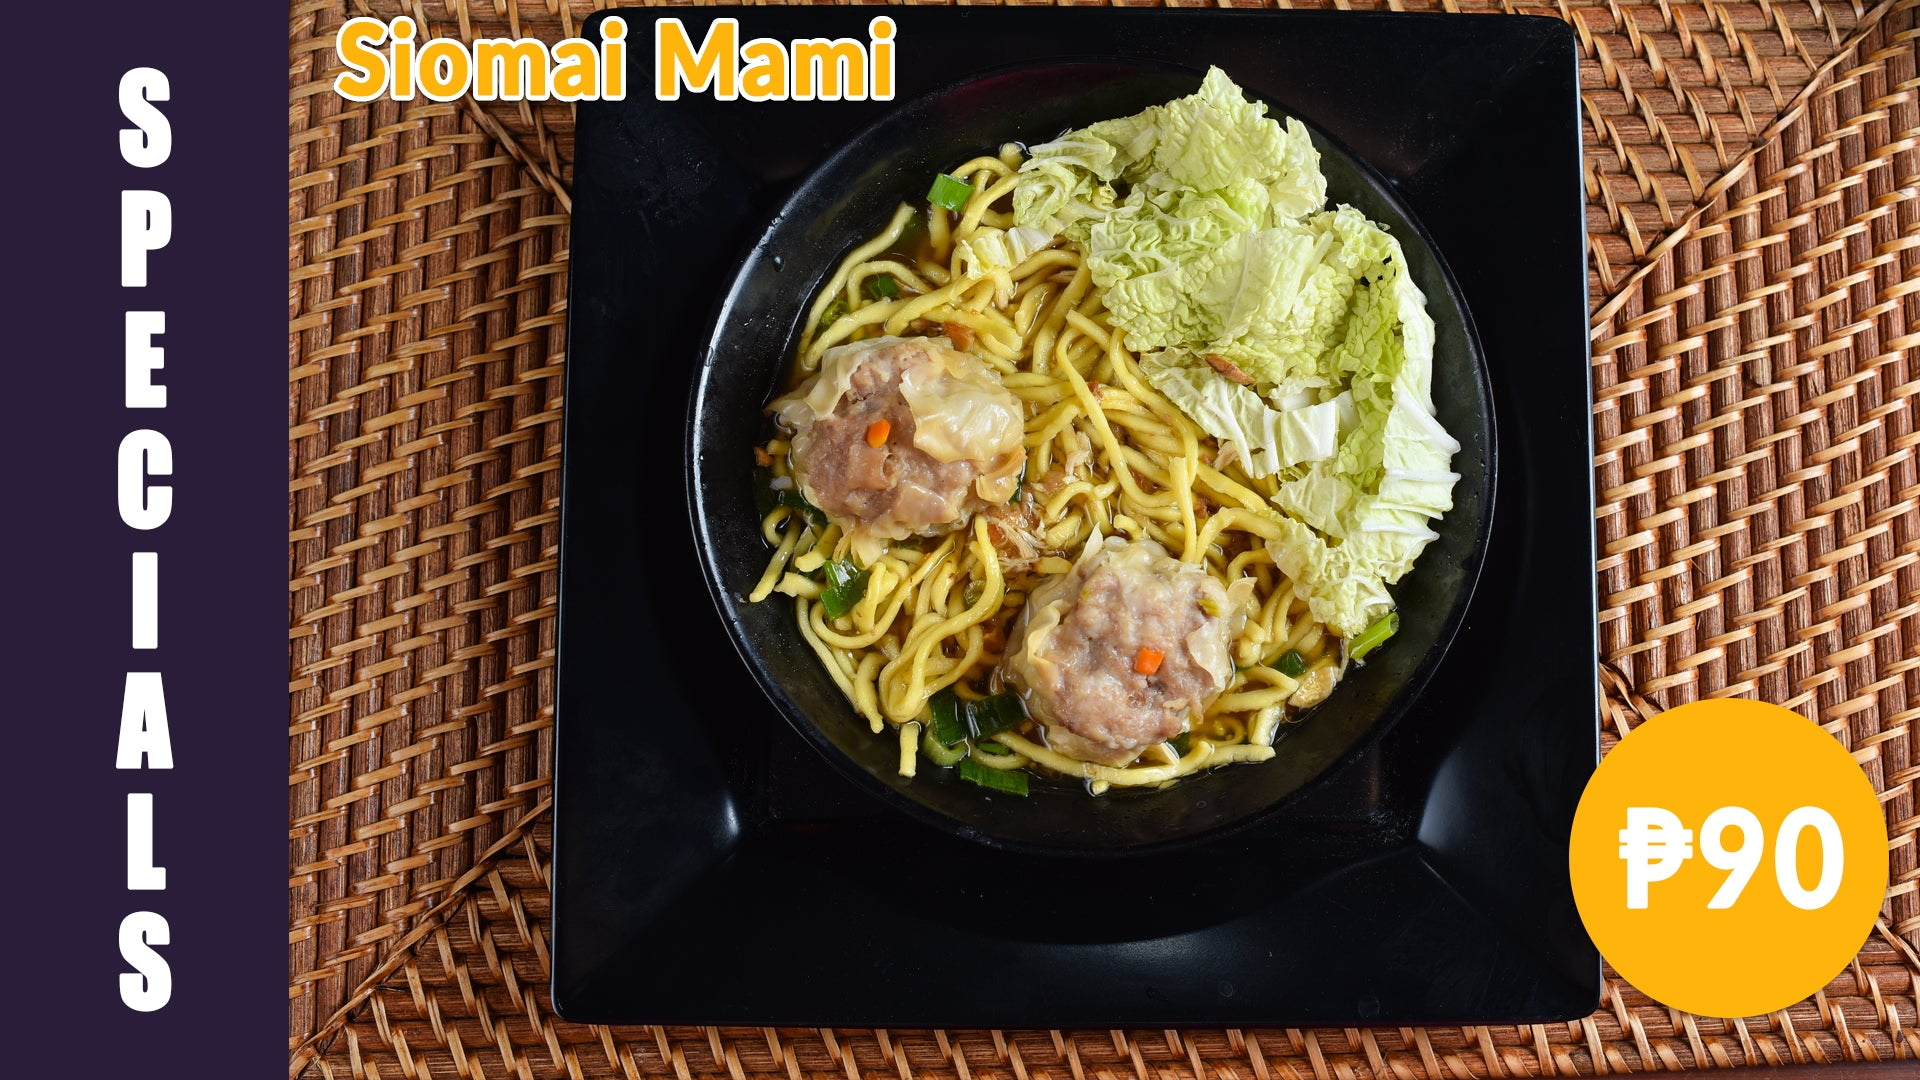 Cocoy's Pork Siomai Mami | Affinity Games